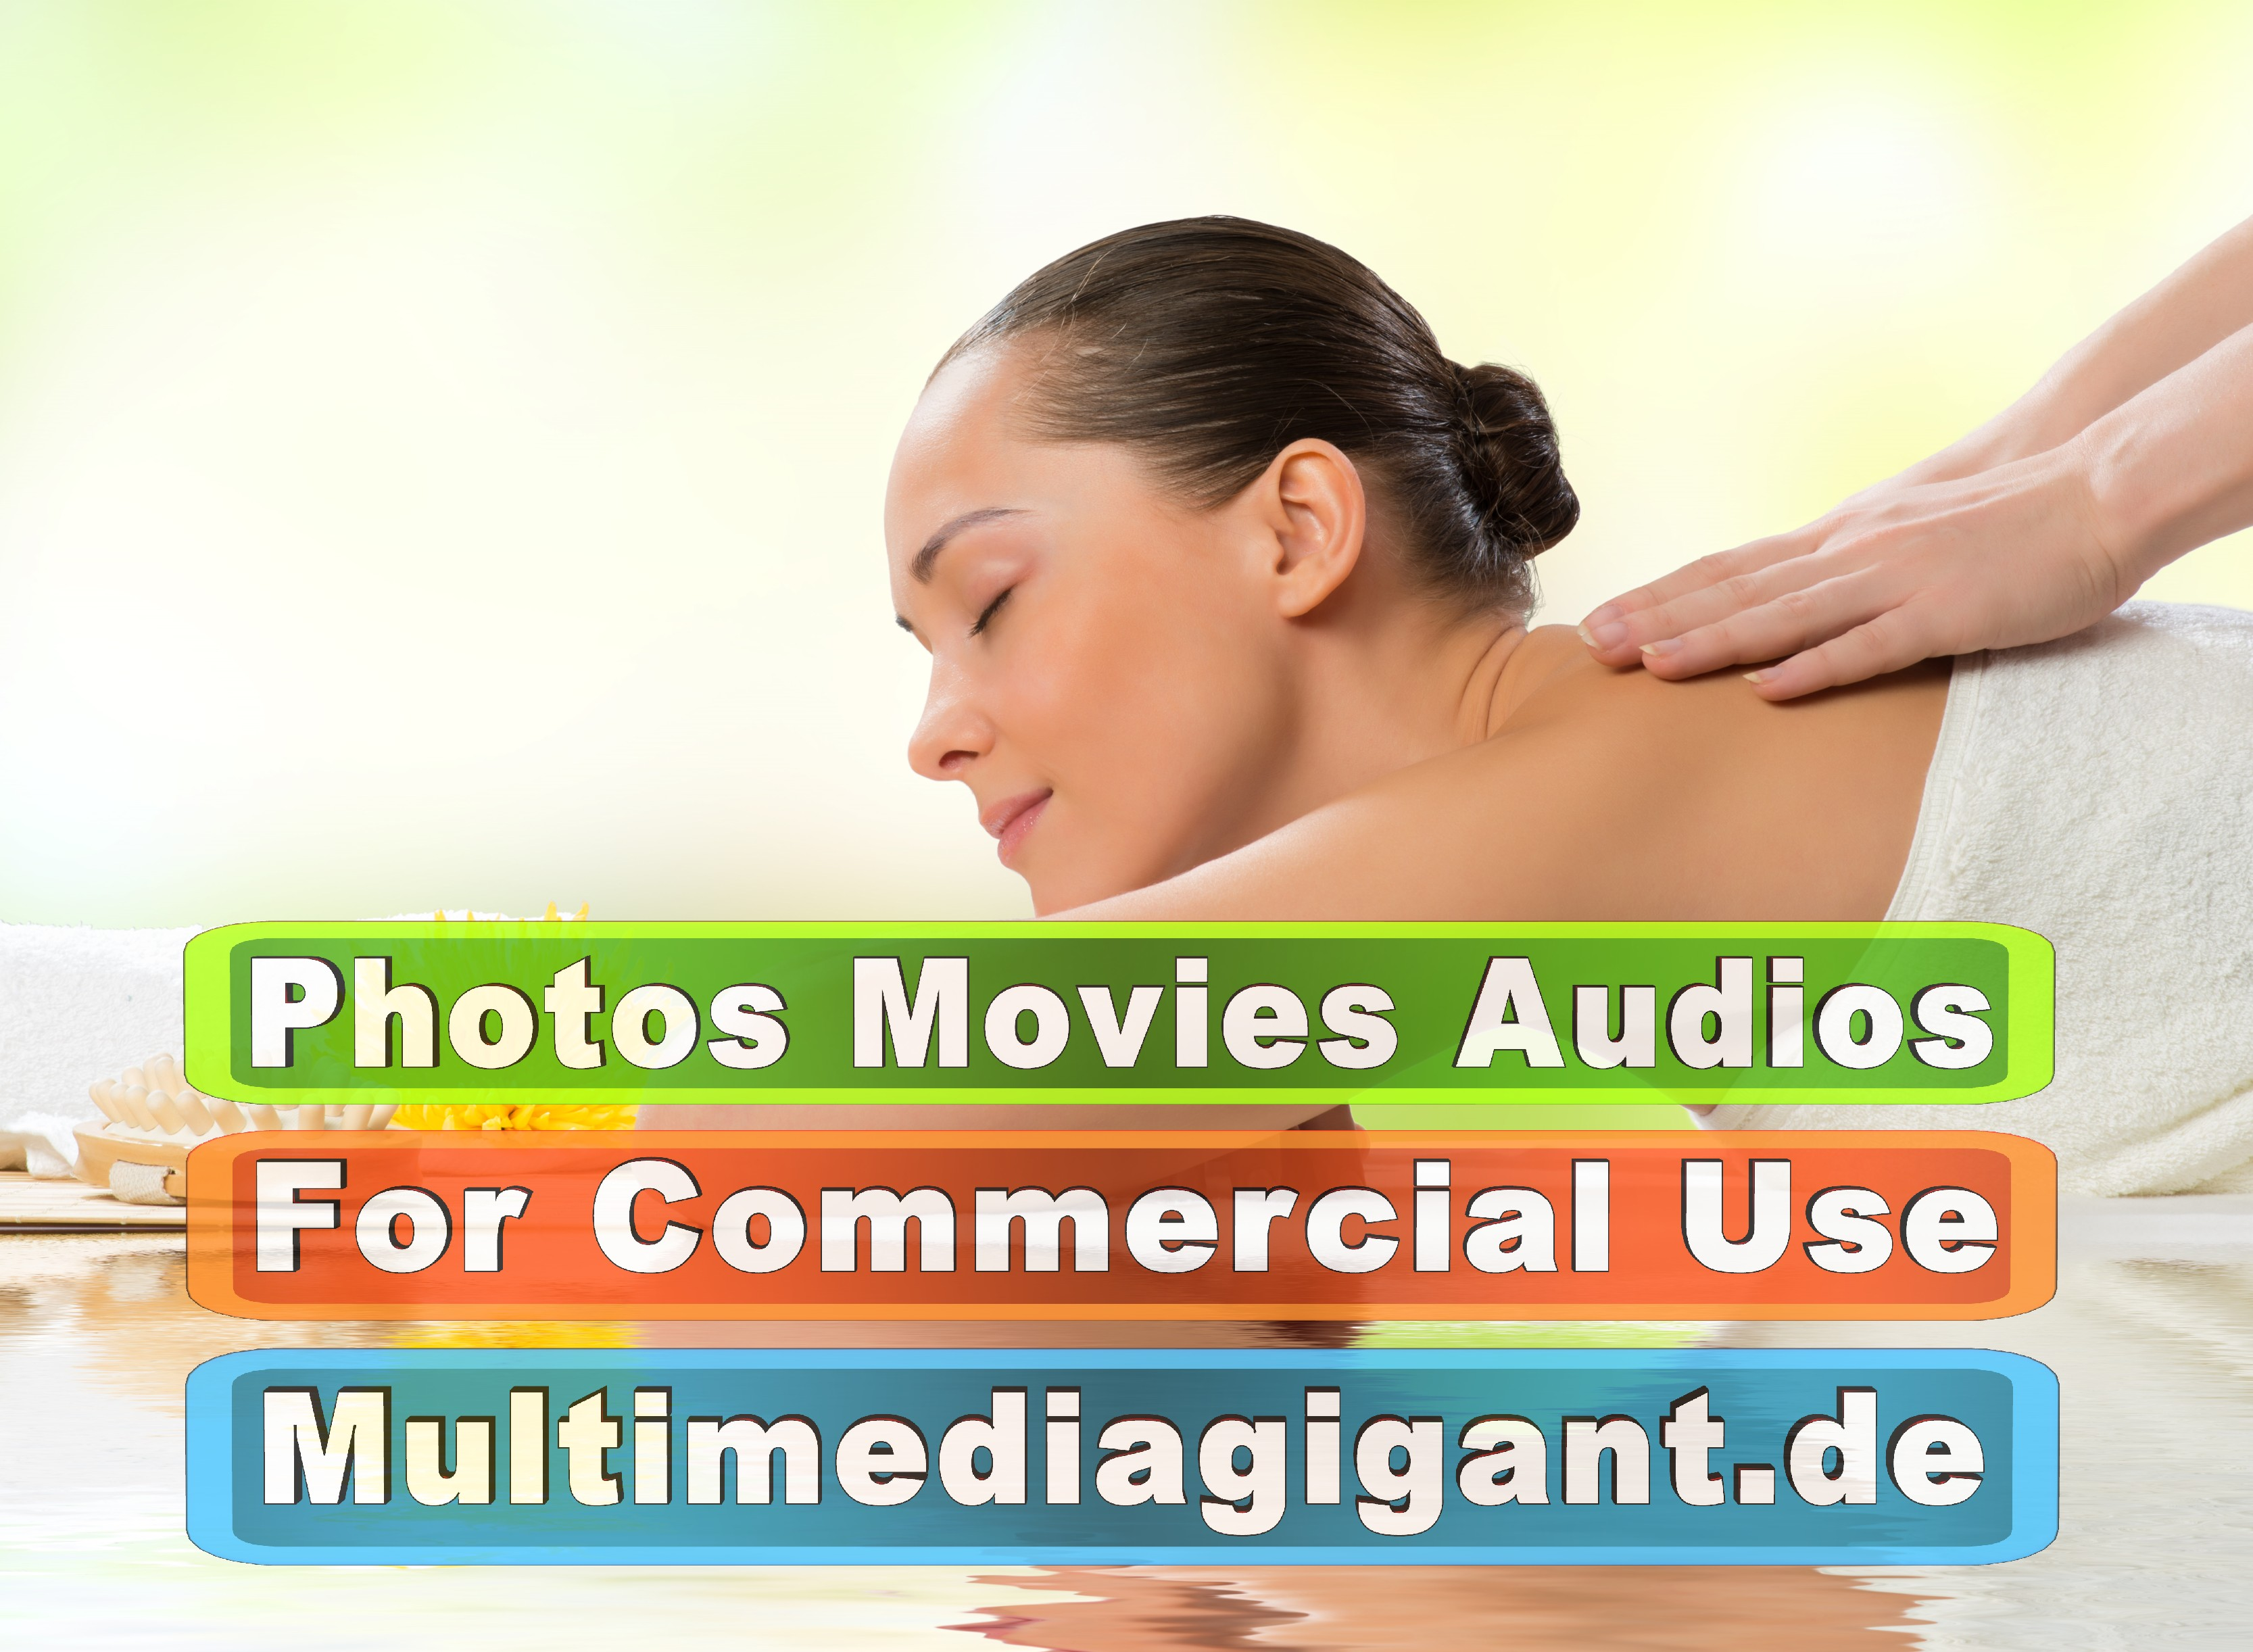 Royalty Free Photos Without Watermark